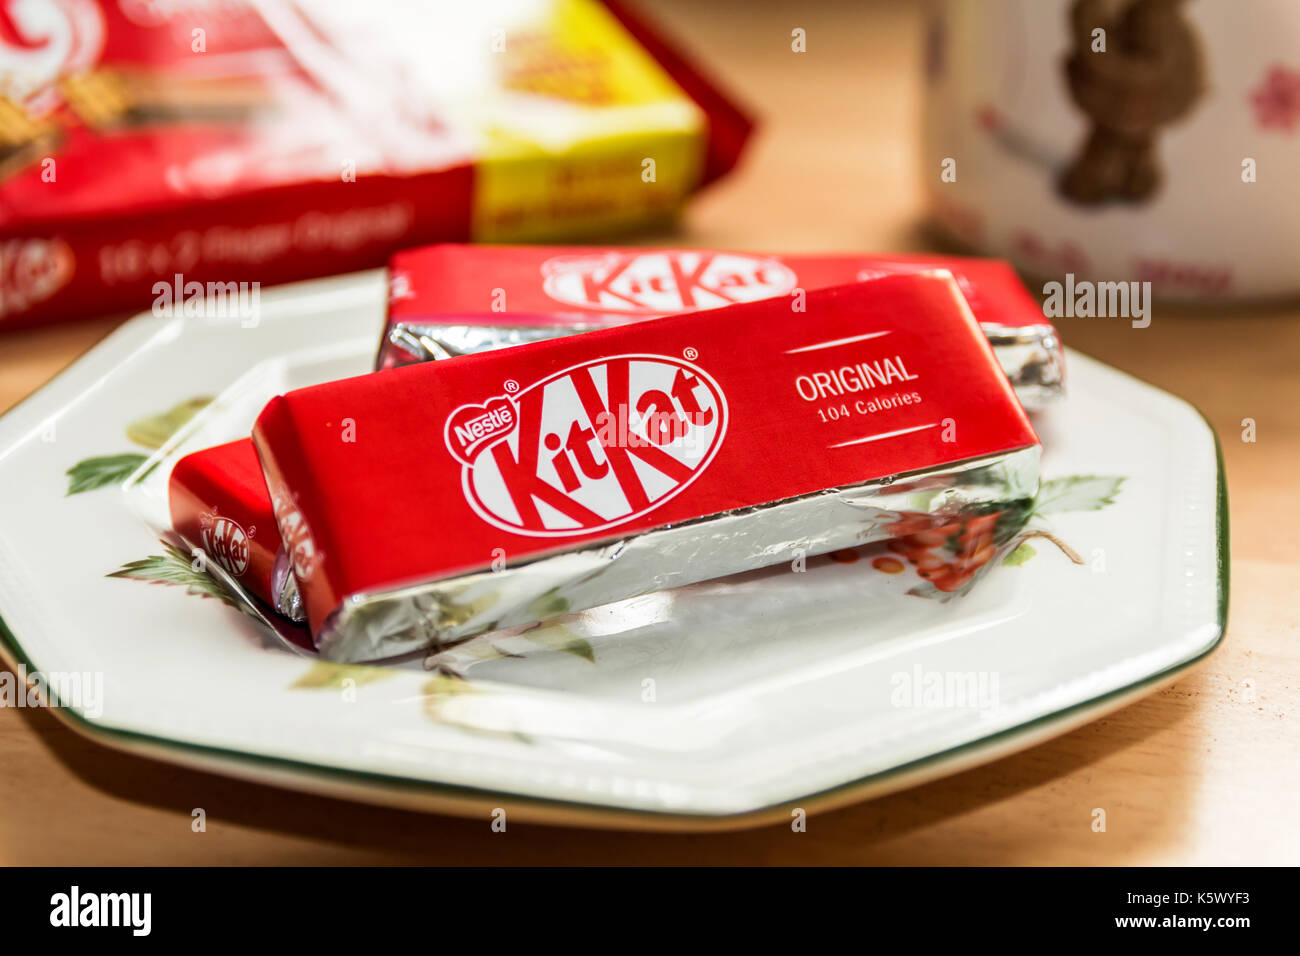 TELFORD, SHROPSHIRE U.K. - SEPTEMBER 6, 2017: Still Life of 'KitKat' snacks displayed on a side plate with a Mug of Tea in the background - Stock Image